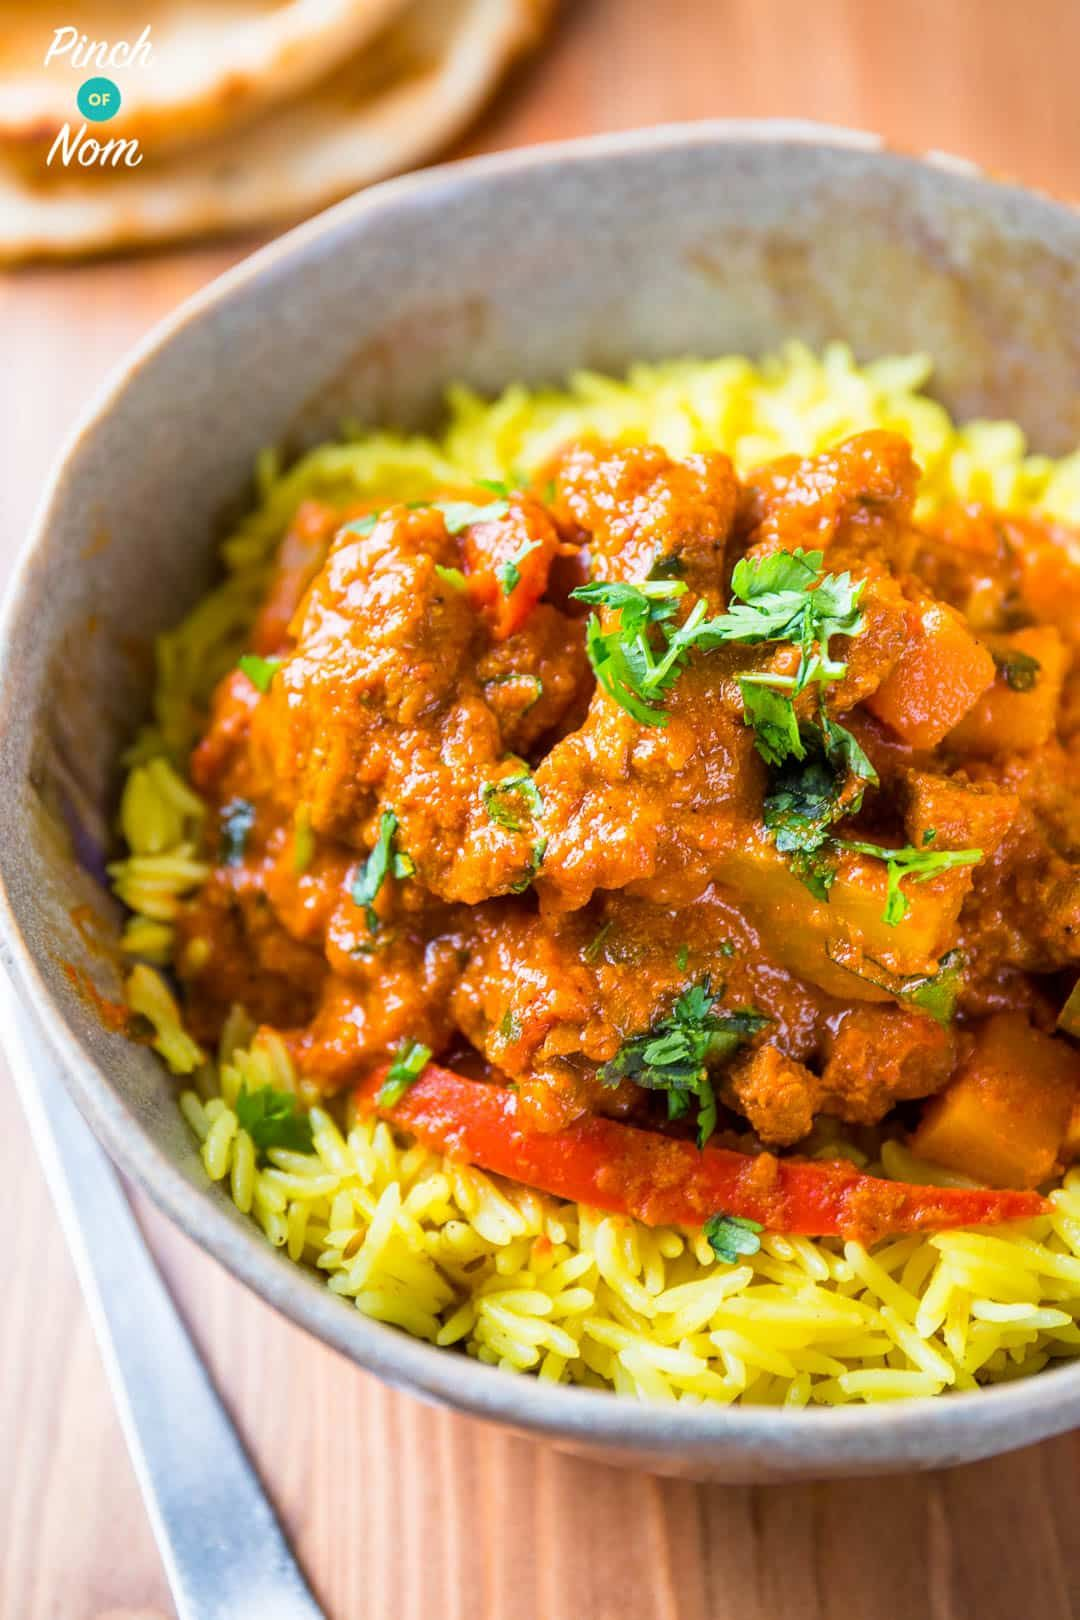 This Syn Free Lamb Rogan Josh Curry Has To Be One Of My